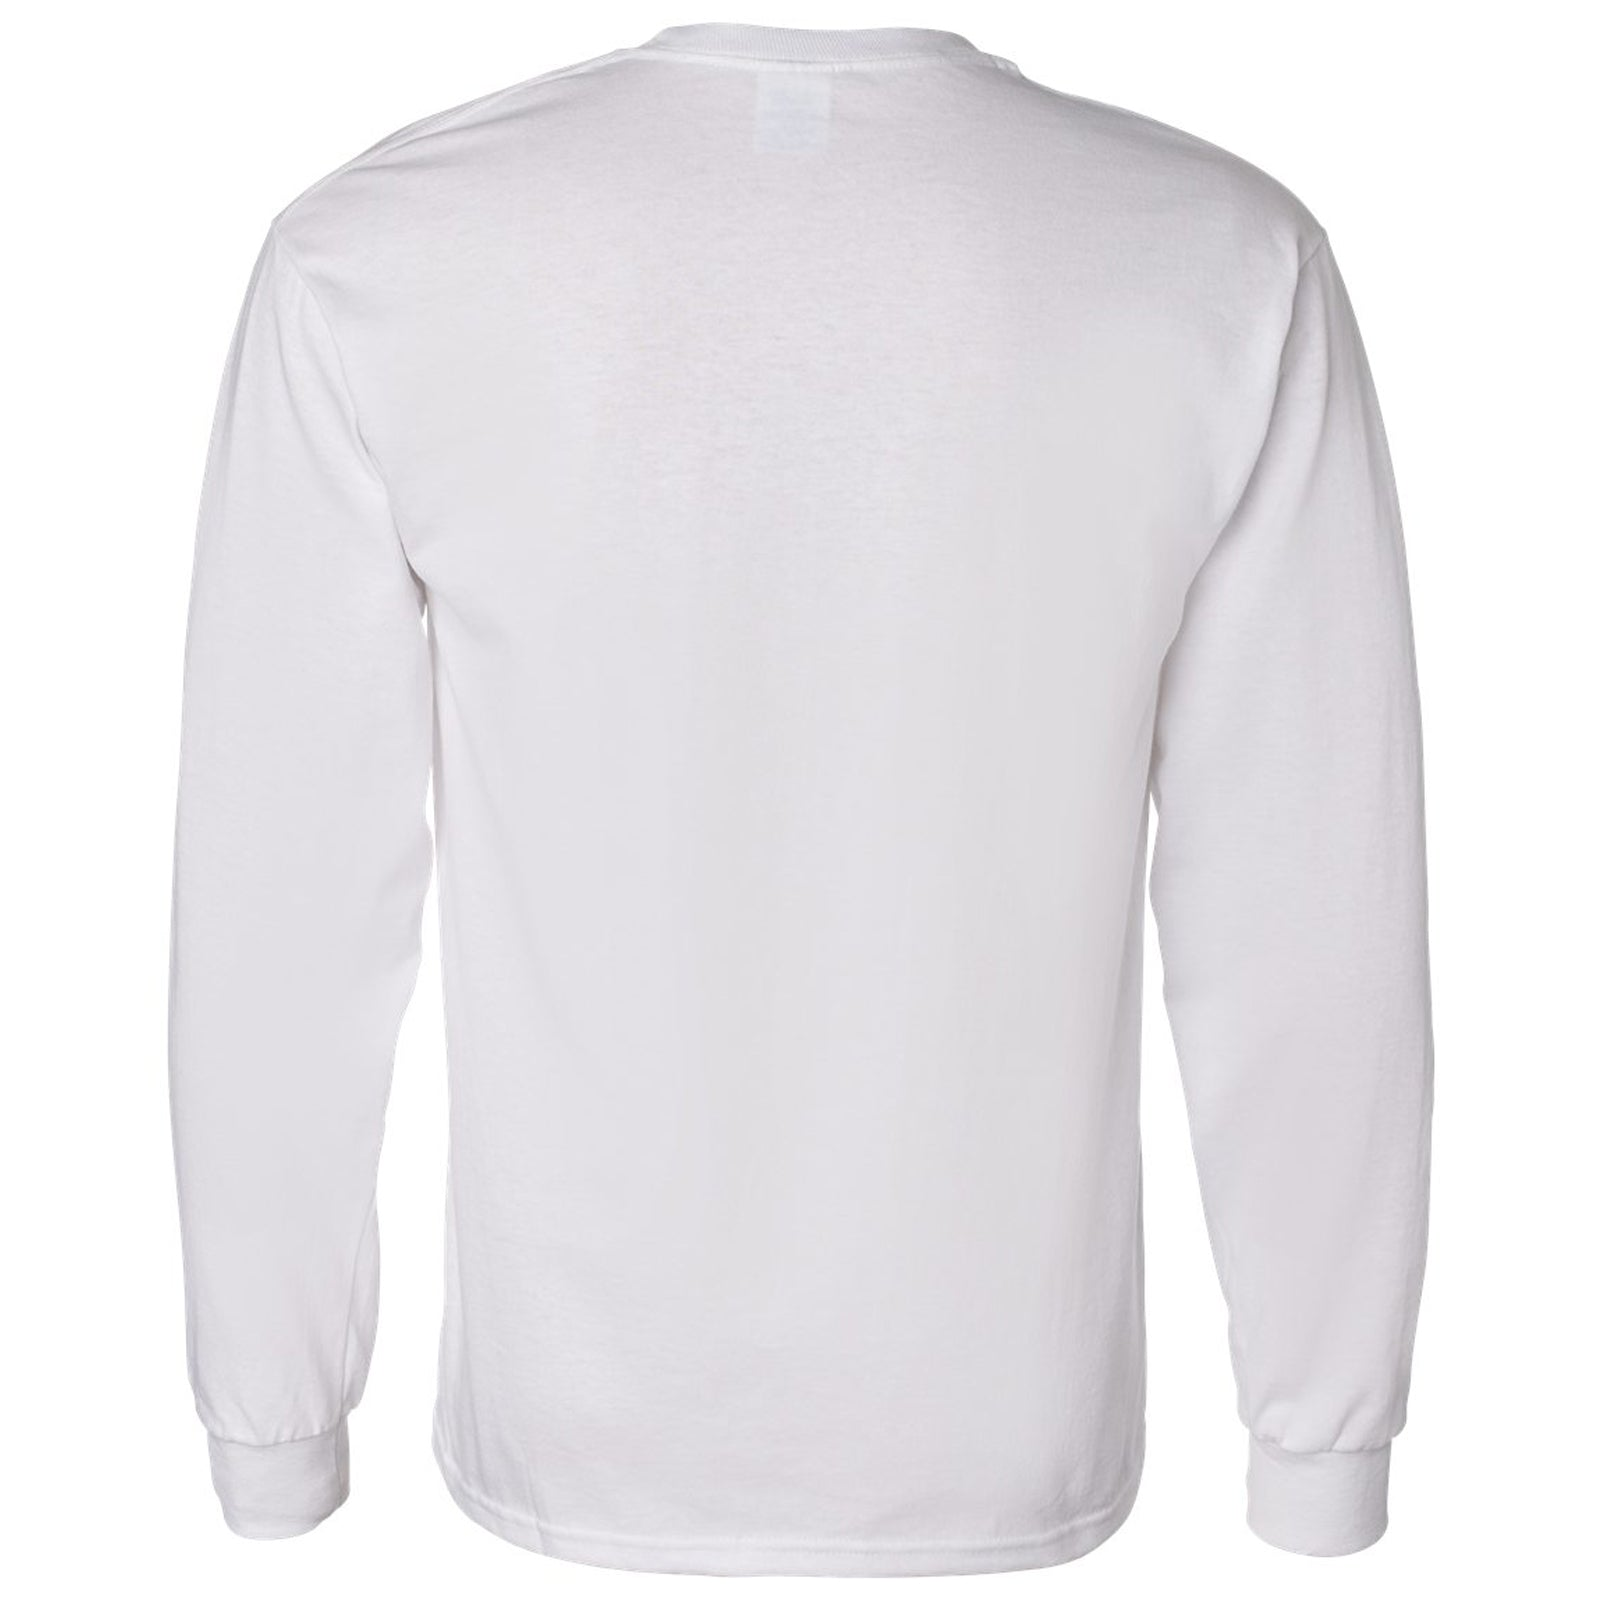 Today I Found Out Longsleeve Tee- White